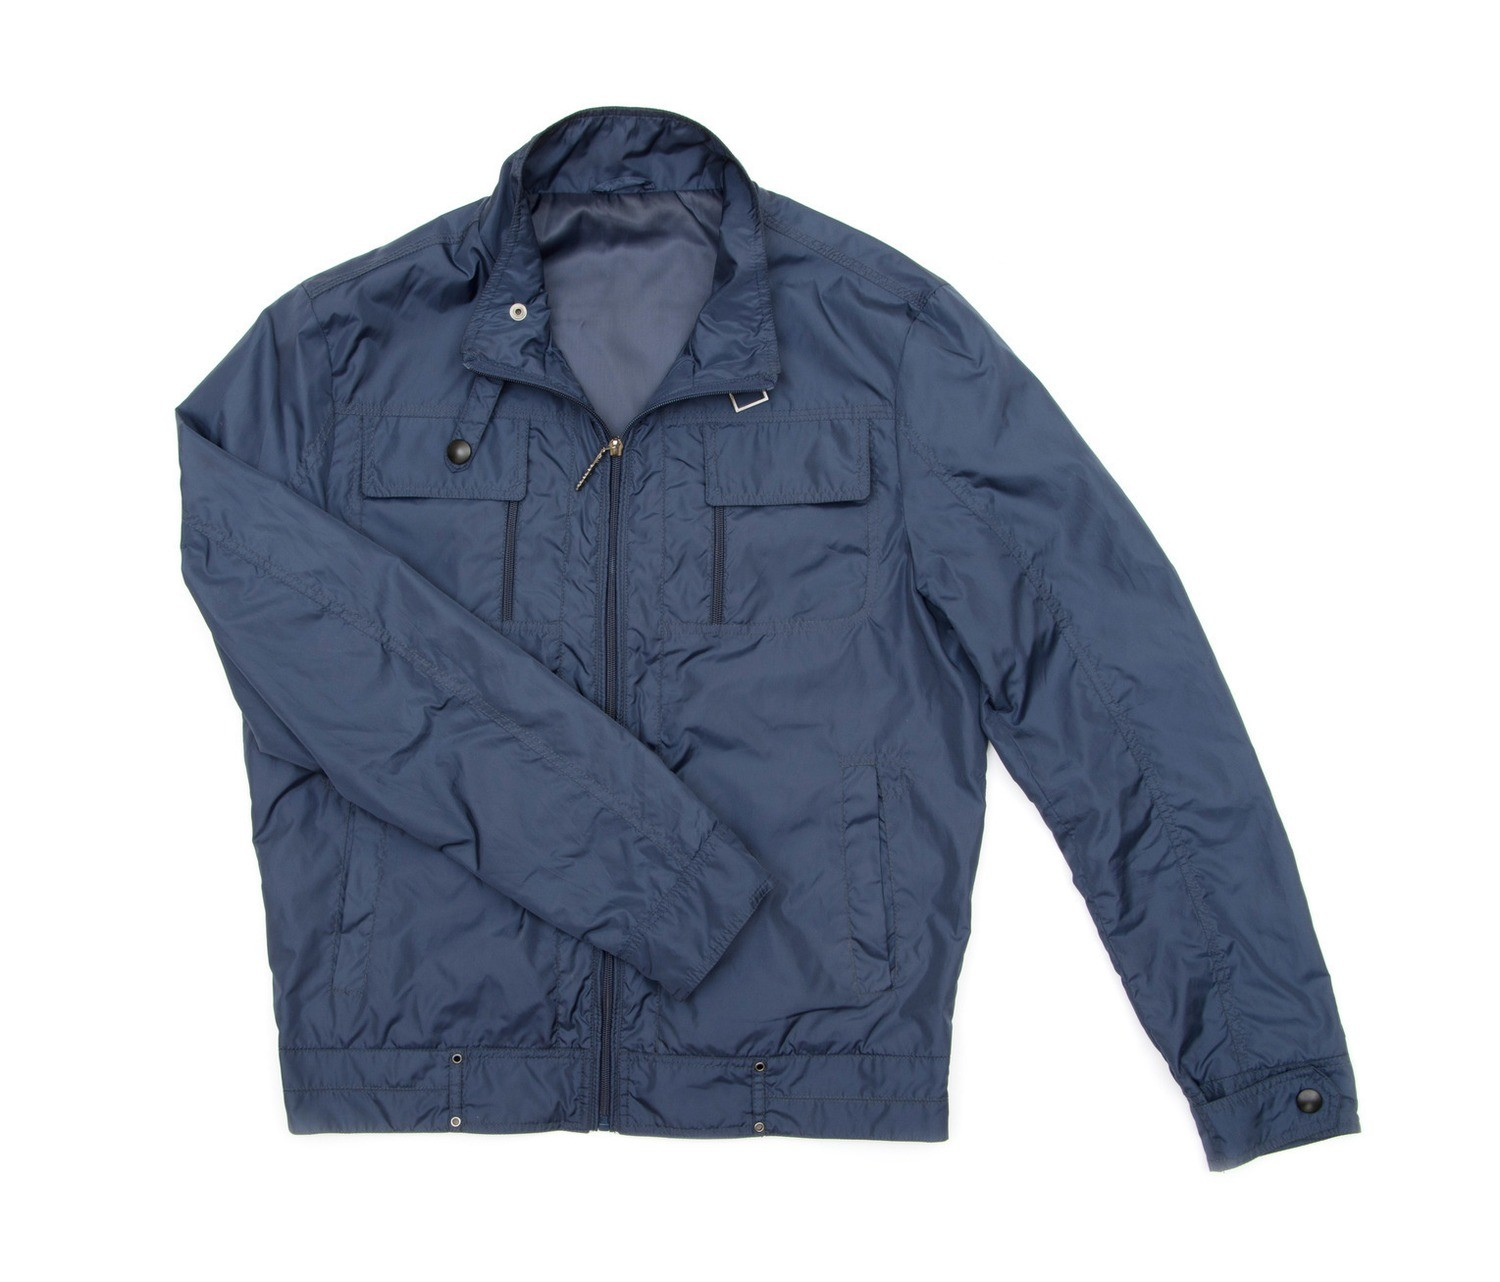 Men's Blue Jacket